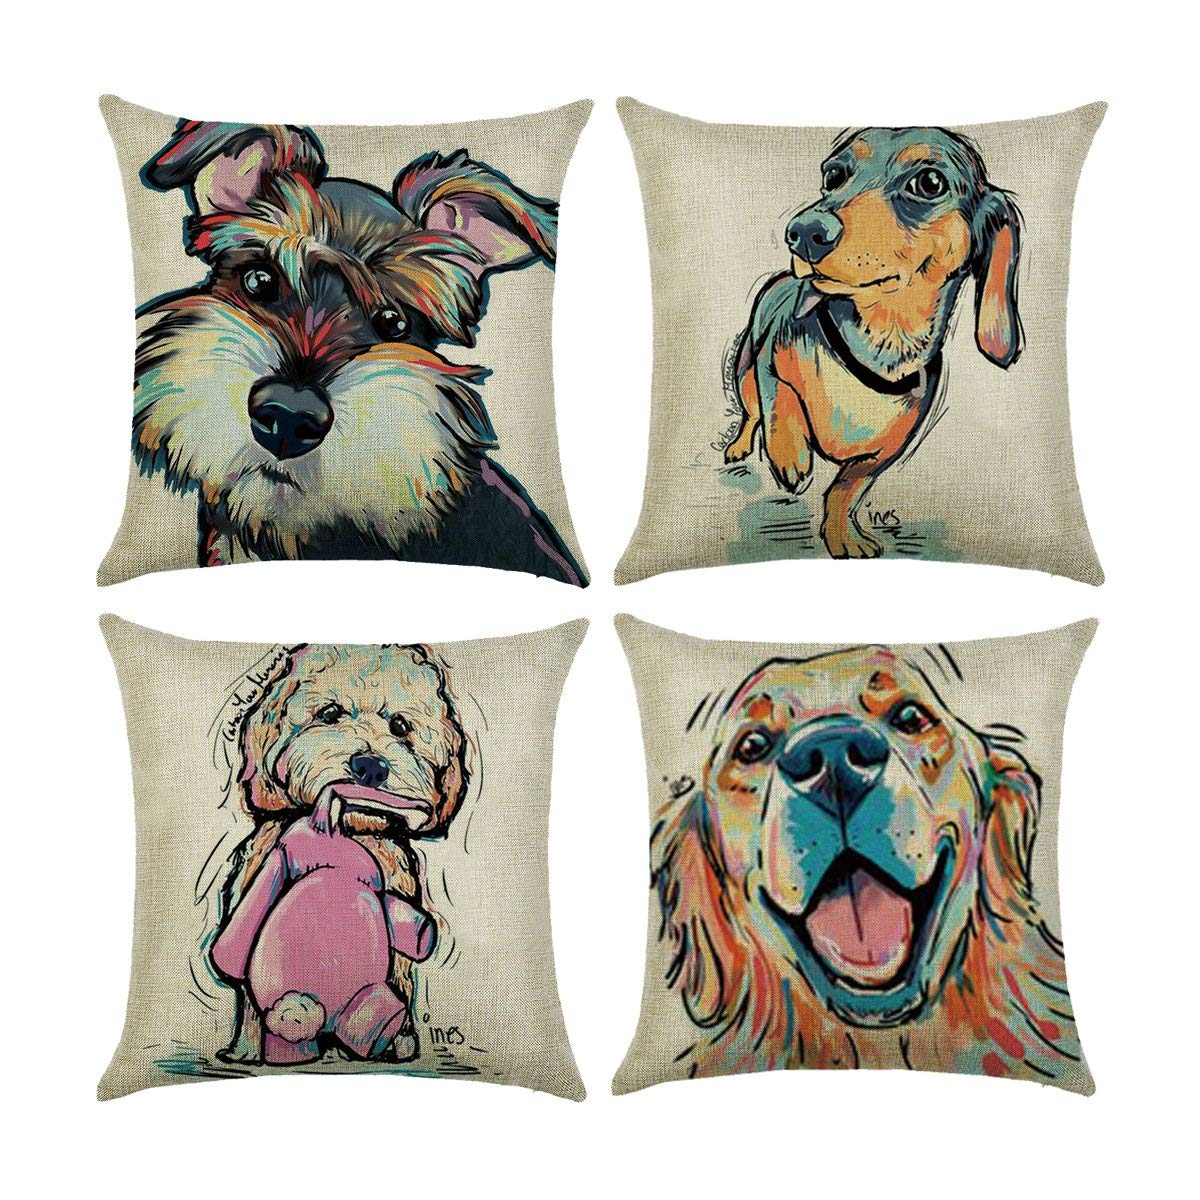 Carrie Home Cartoon Lovely Animal Abstract Oil Painting Adorable Pet Dogs Throw Pillow Covers Decorative Schnauzer Golden Retriever Dog Pillowcase for Sofa Bed Chair 18x18, 4 Pack